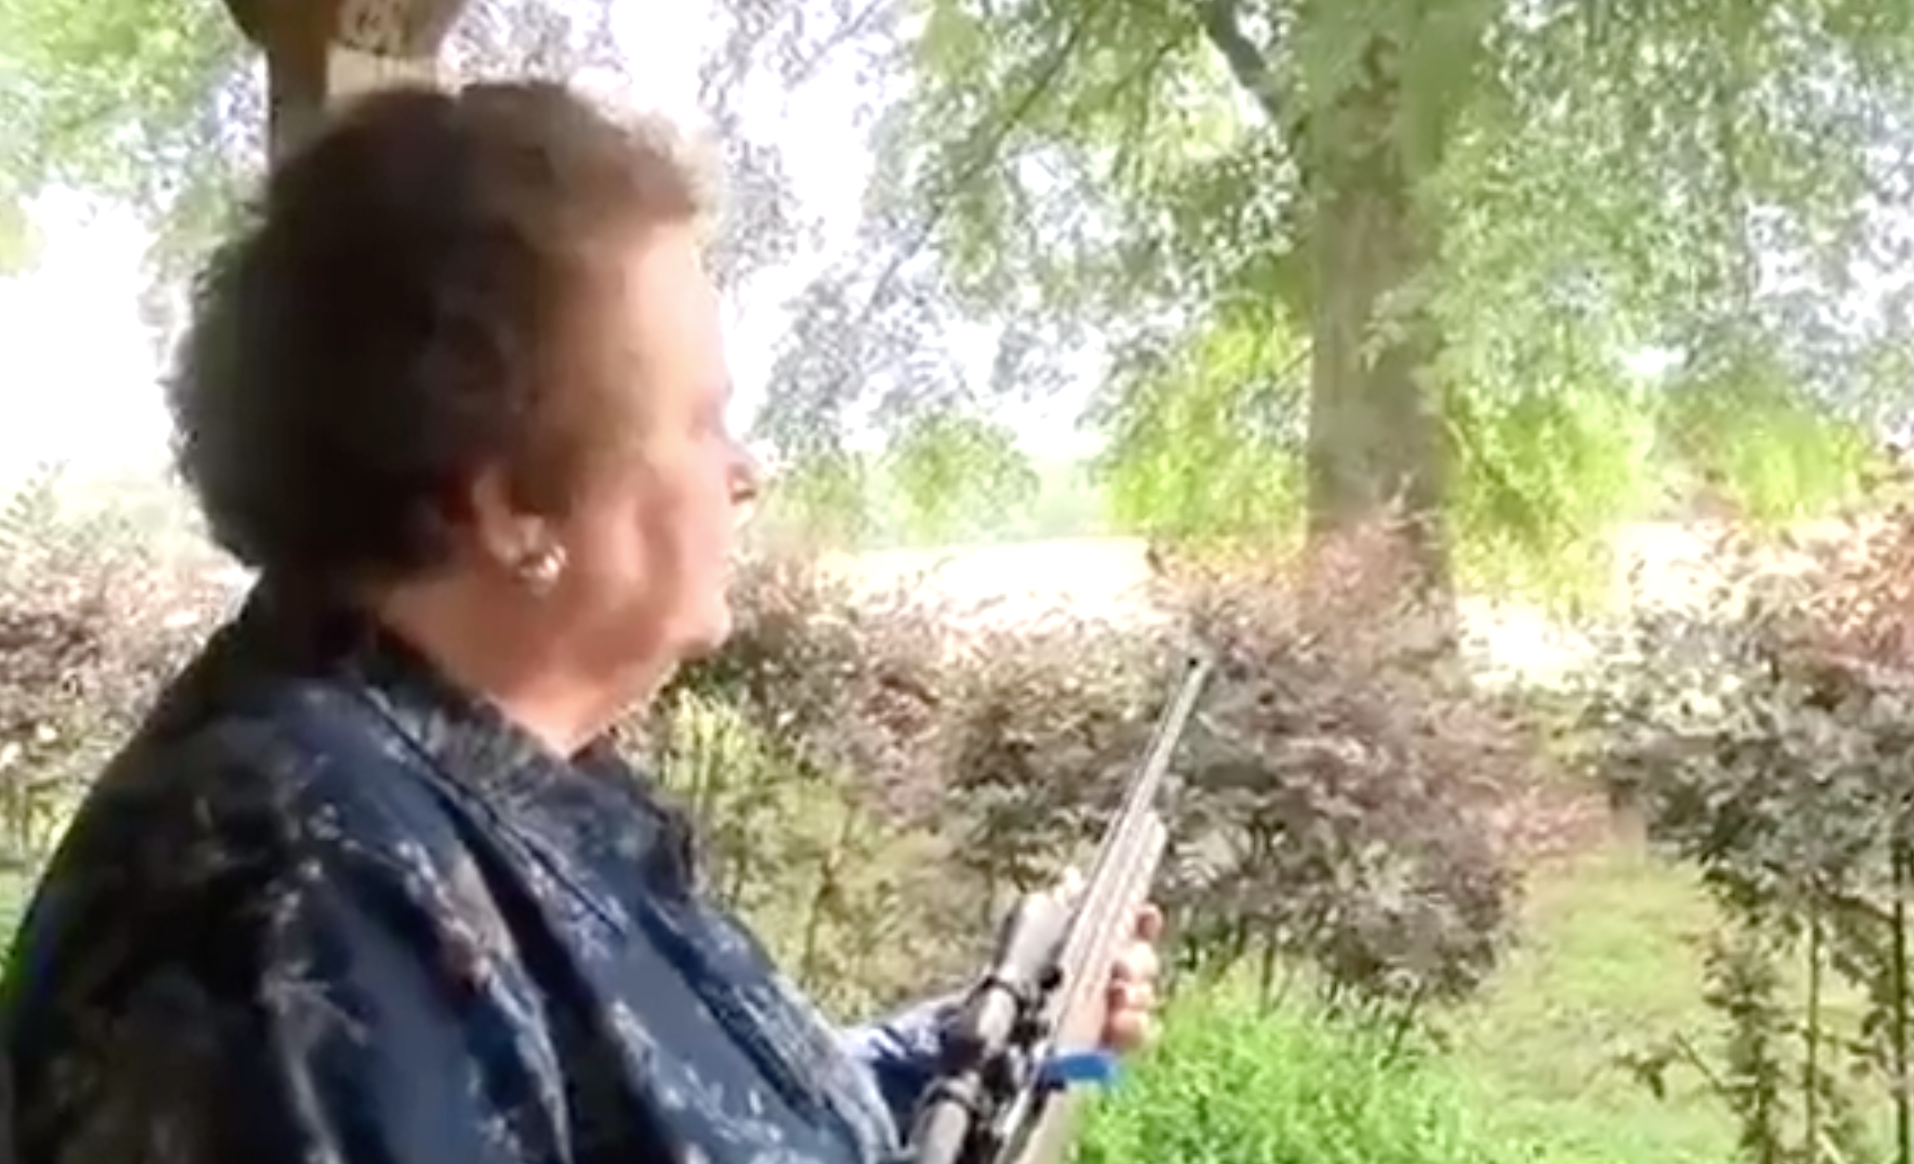 Grandma busts out freedom tool, holds car thief at gunpoint until police arrive